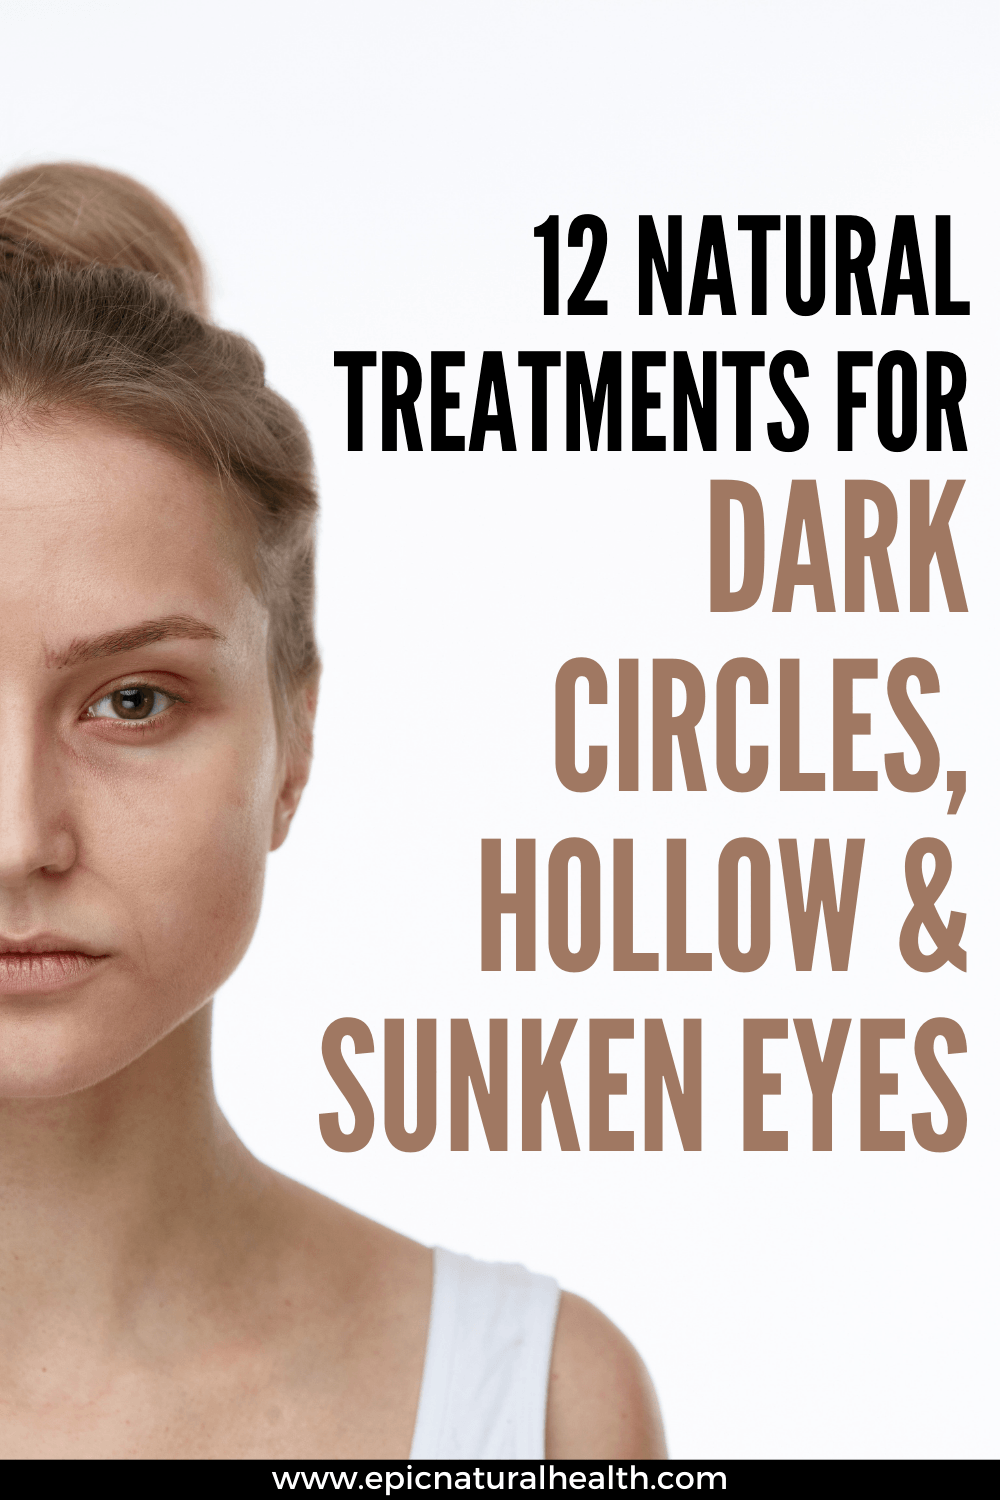 natural treatments for dark cirlces, hollow and sunken eyes